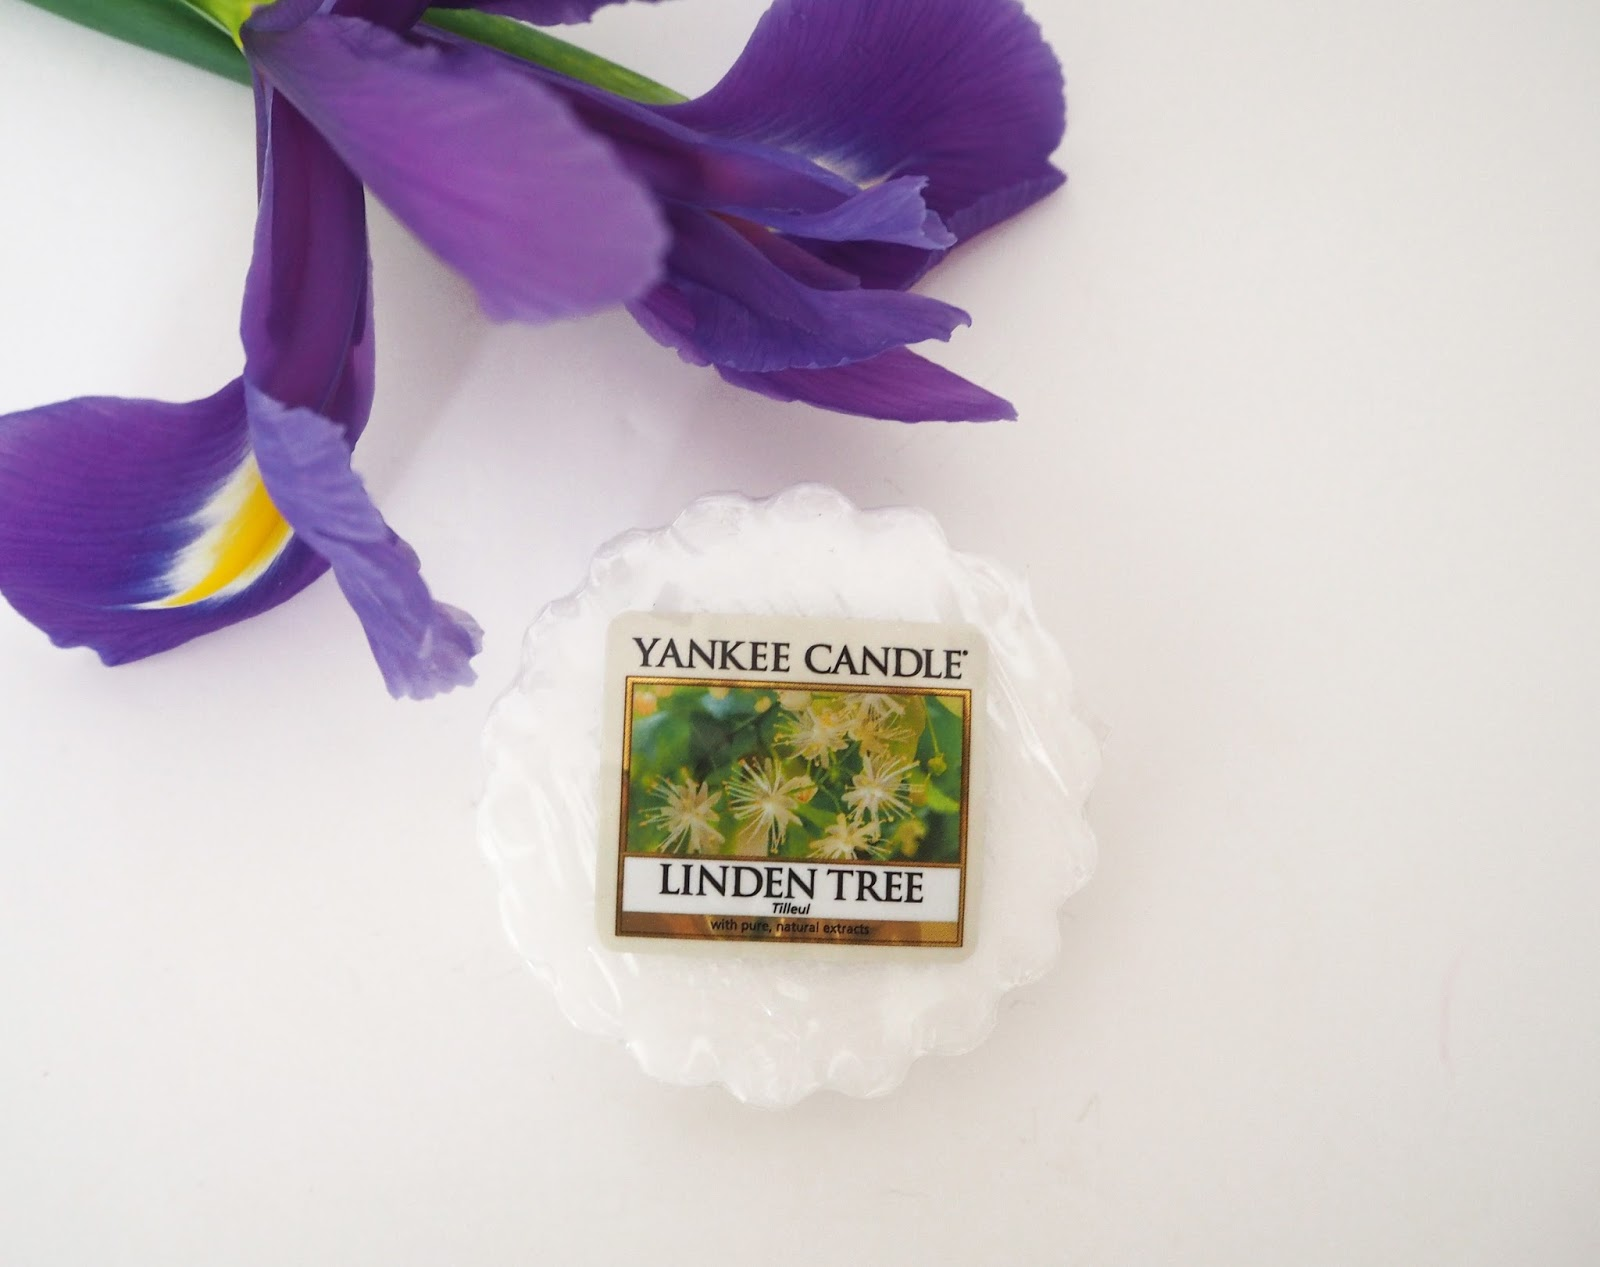 Loves List: January, Katie Kirk Loves, UK Blogger, Lifestyle Blogger, Beauty Blogger, Yankee Candle, Linden Tree Wax Melt, Pure Essence